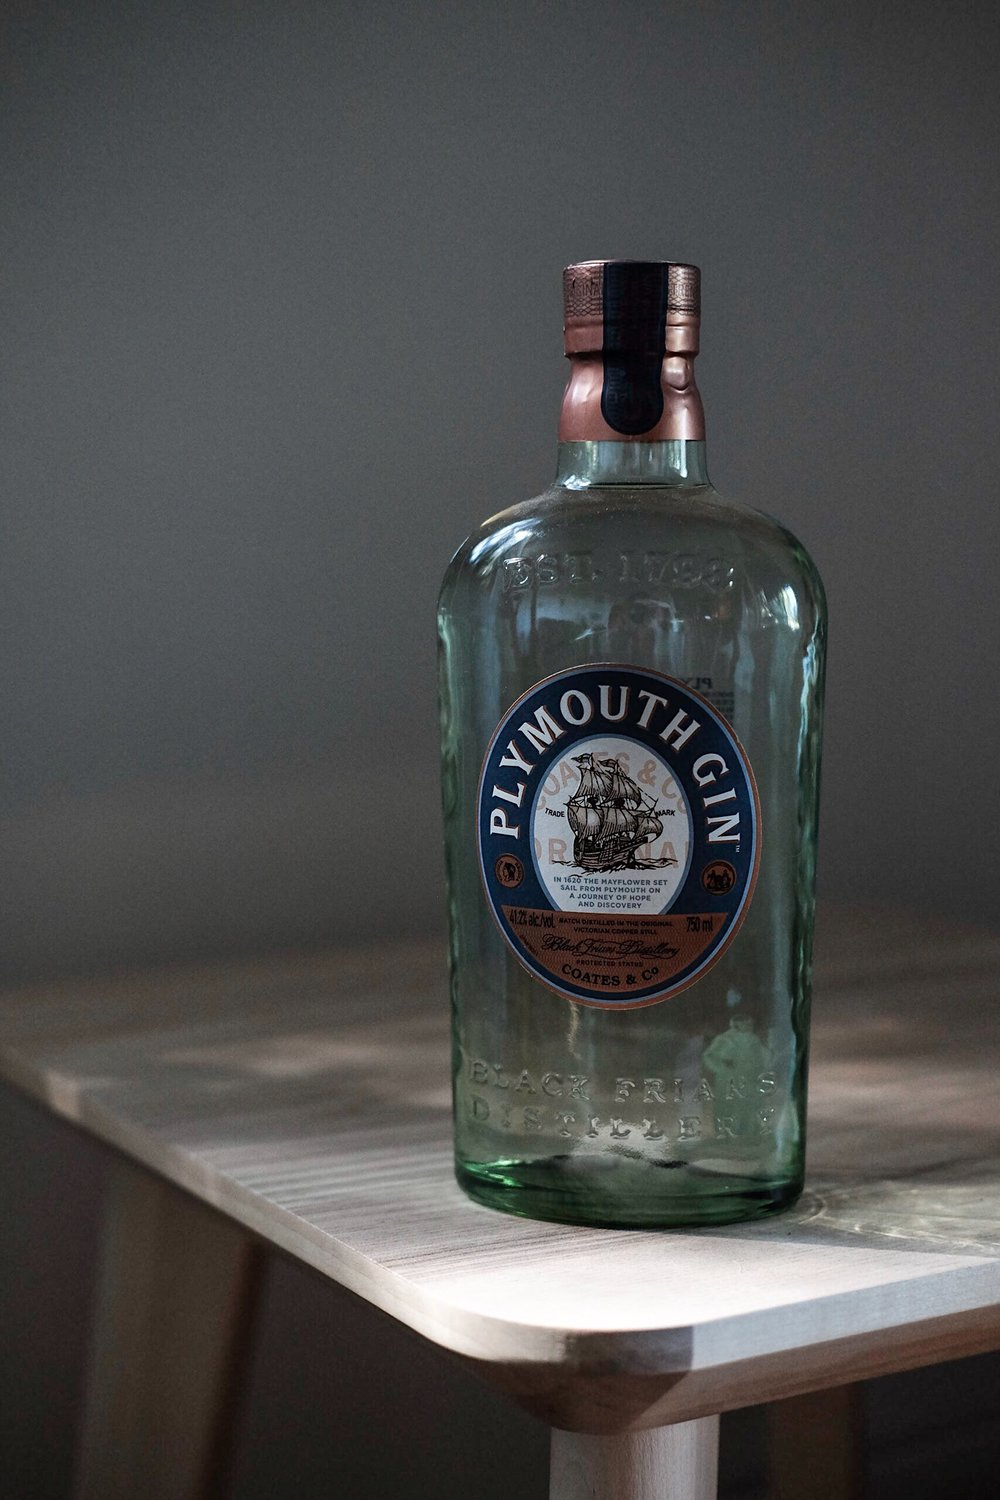 Plymouth Gin - AGE: unagedCOST: $26-$32ABV: 41.2DEFINING FLAVORS: Spicy & Fruity